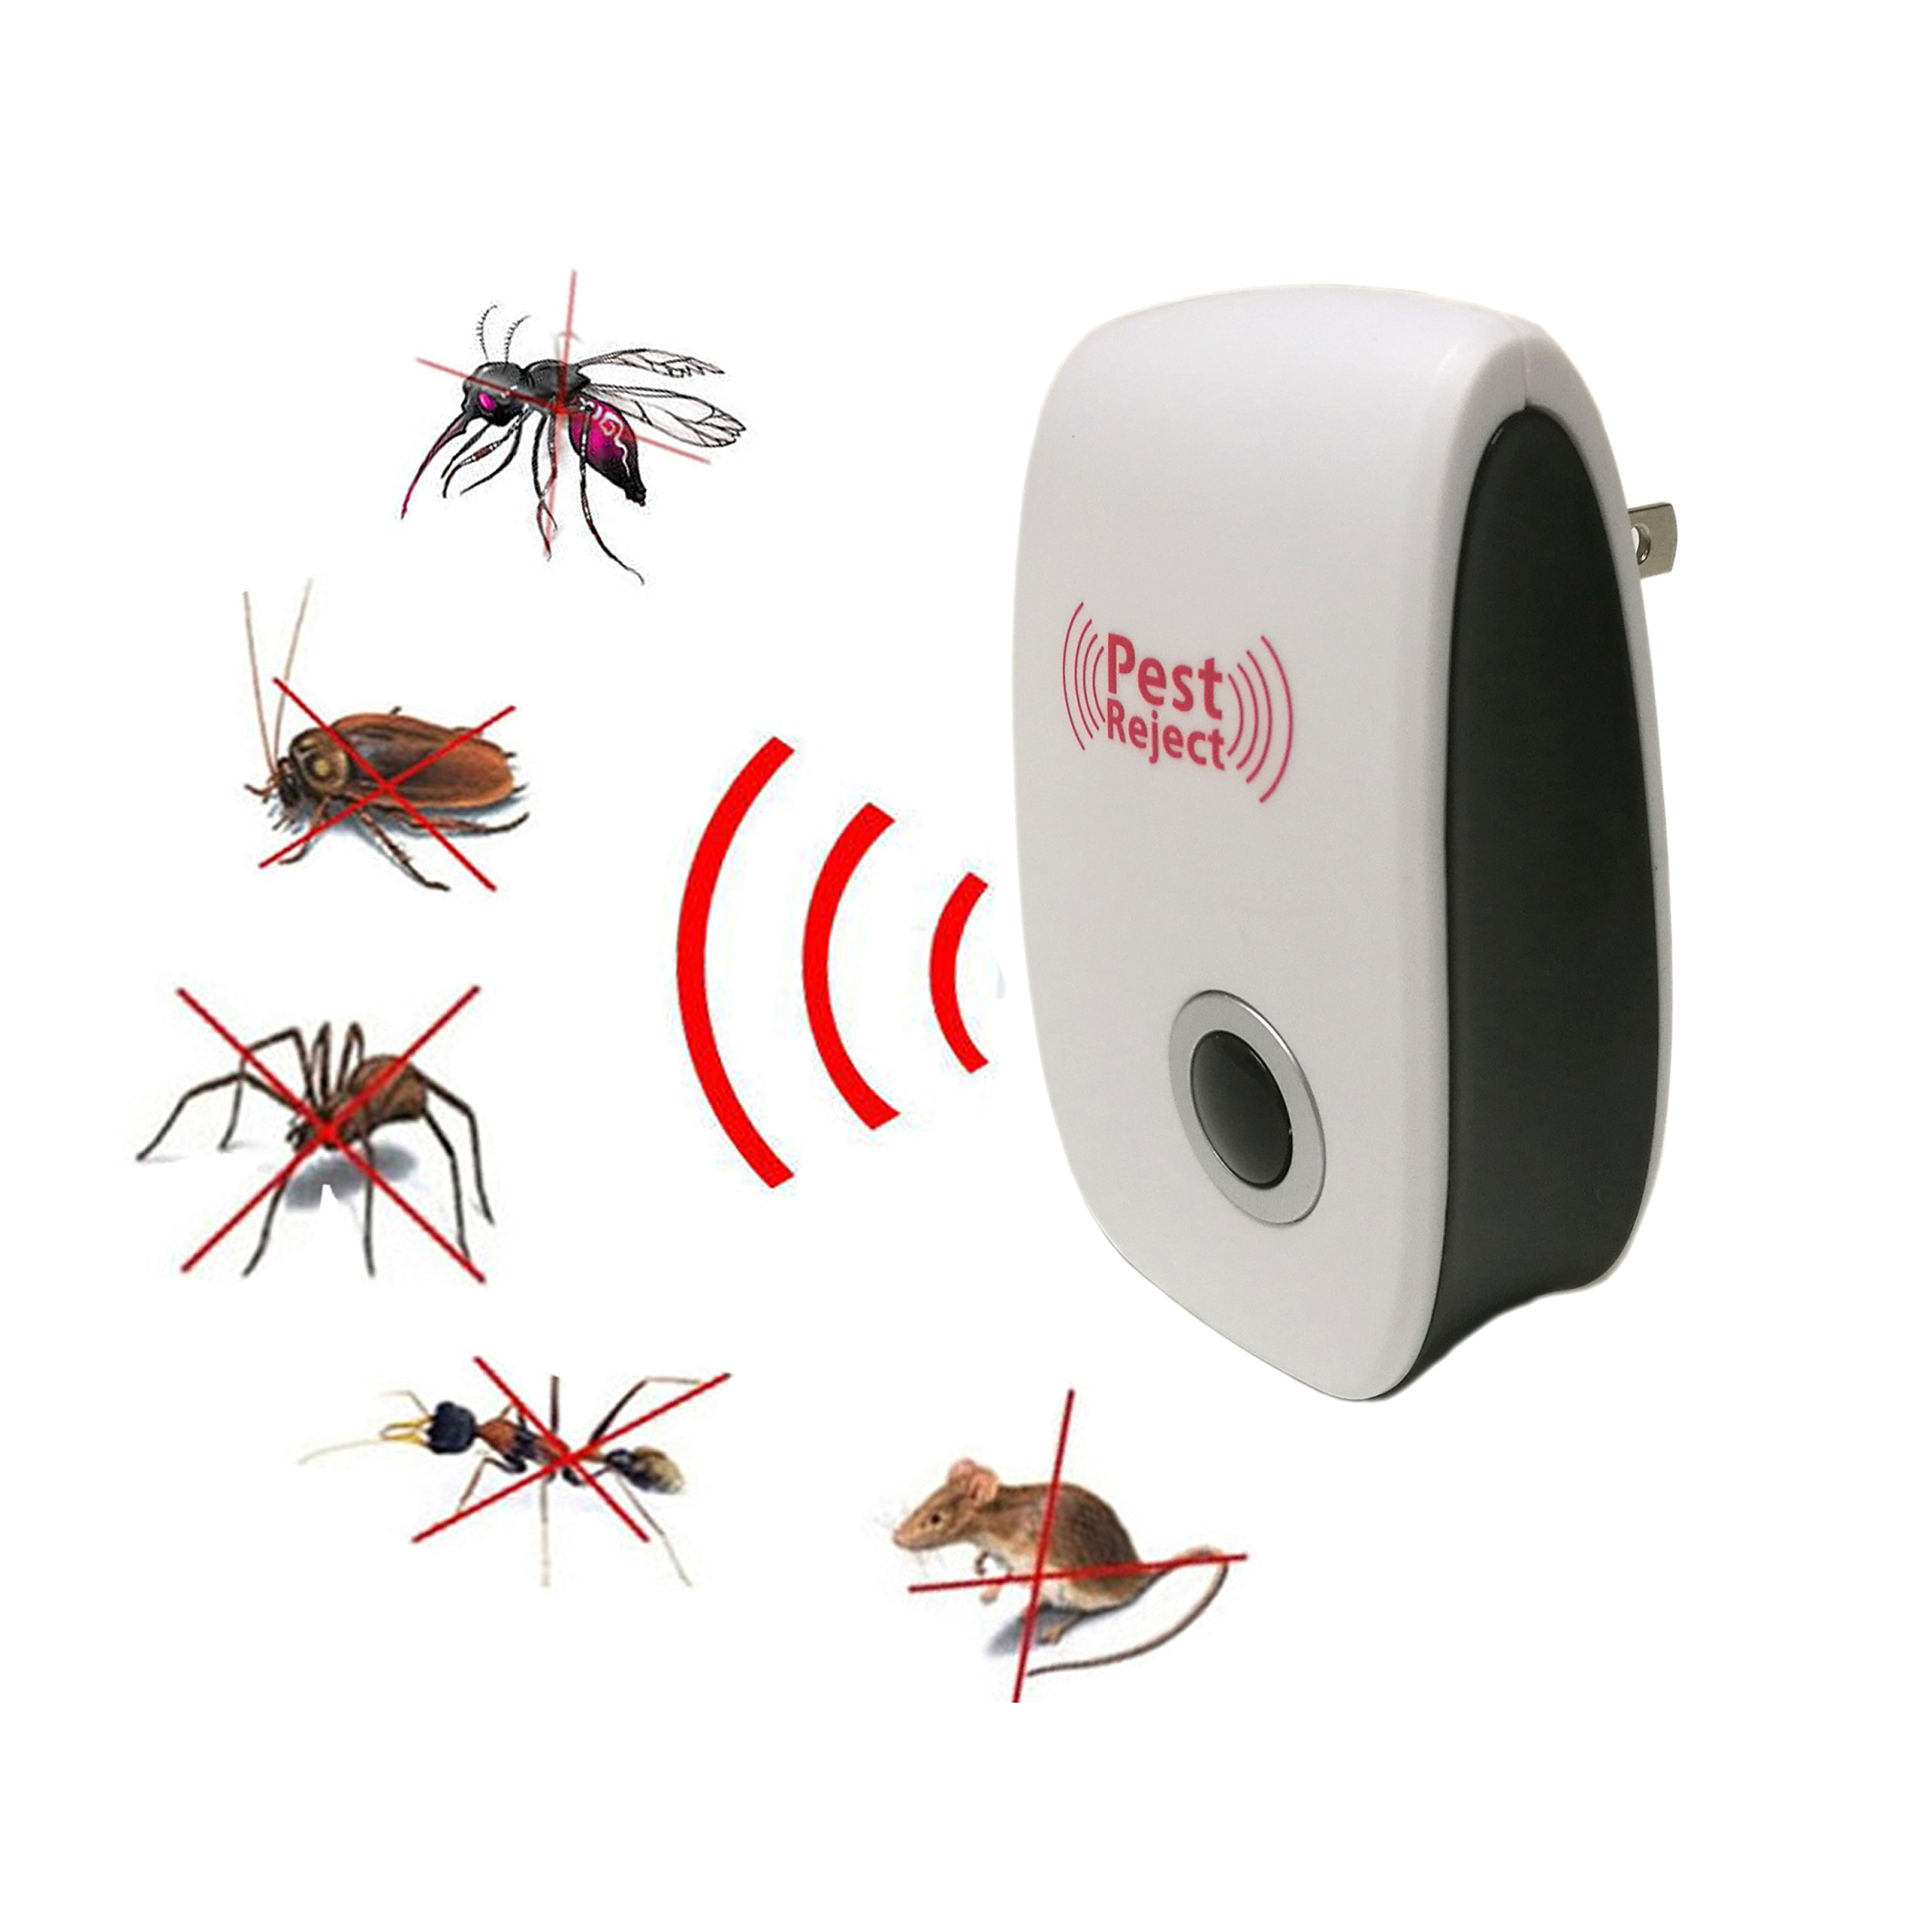 Yutudu Ultrasonic Pest Repeller Plug In Electronic Pest Repellent Insect Expeller Reject Mouse Mosquito Ant Flies Spider Bugs Repeller(6 pack)